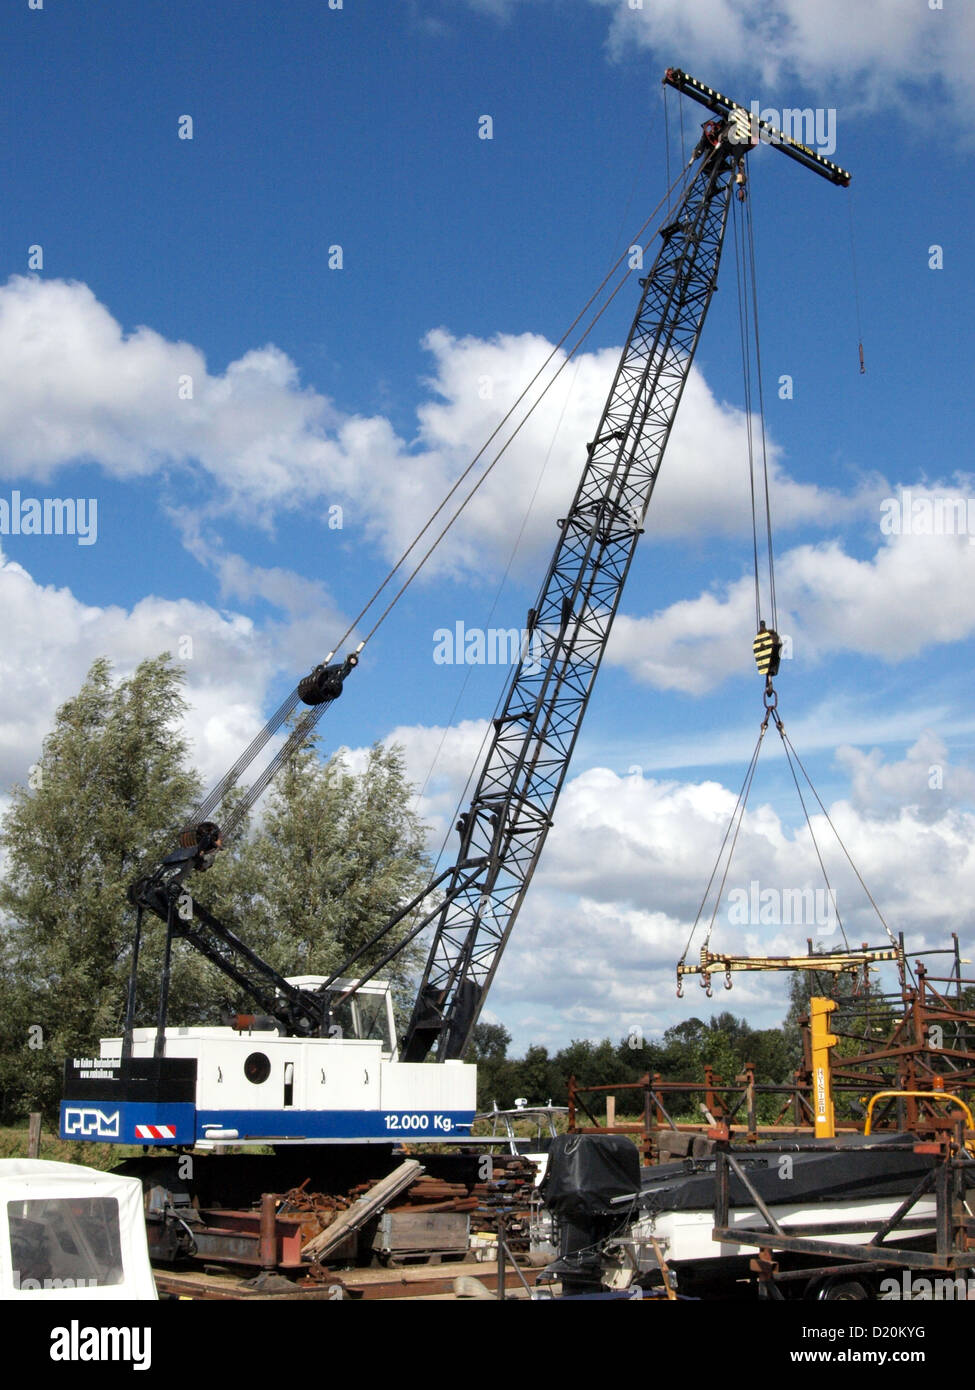 PPM crane removed from its tracks - Stock Image